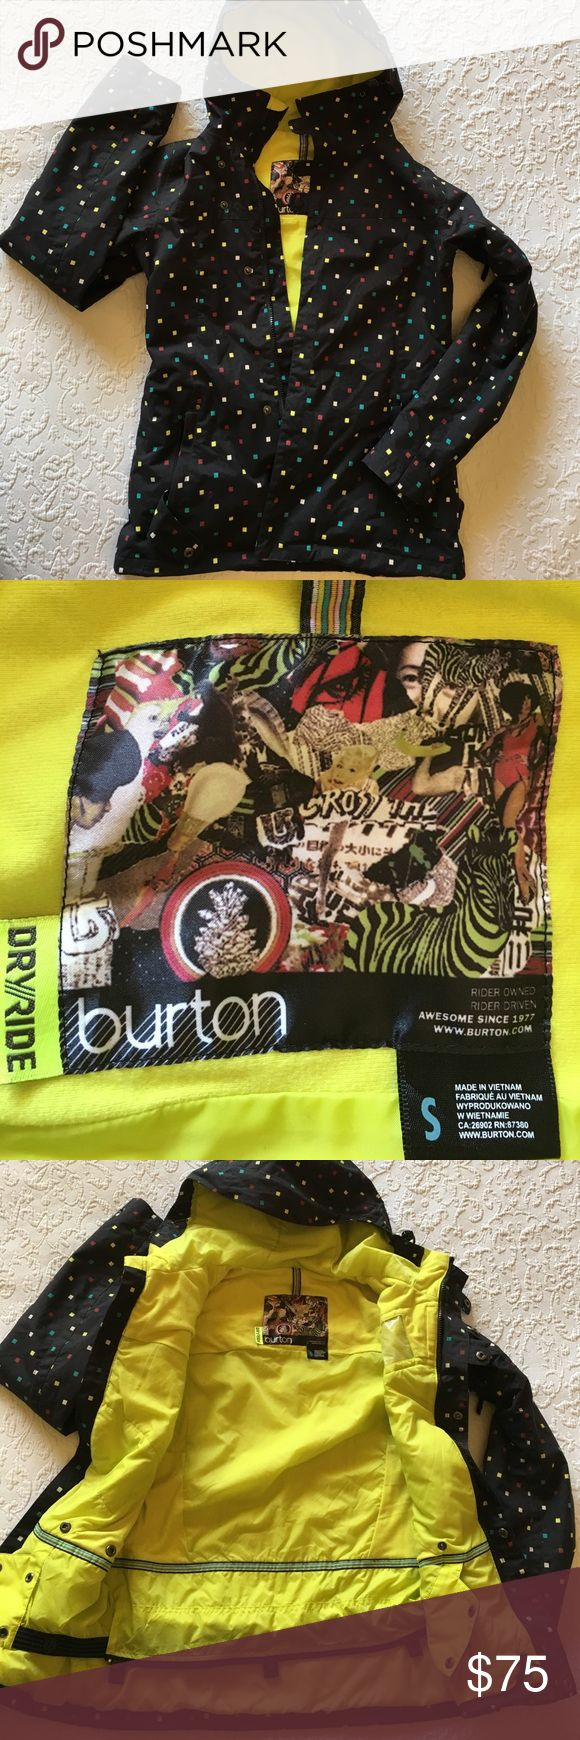 Burton snowboarding jacket Beautiful Burton DryRide snowboarding jacket with all the bells and whistles you'd expect to find from Burton. In excellent condition. Black with bright yellow interior. Burton Jackets & Coats